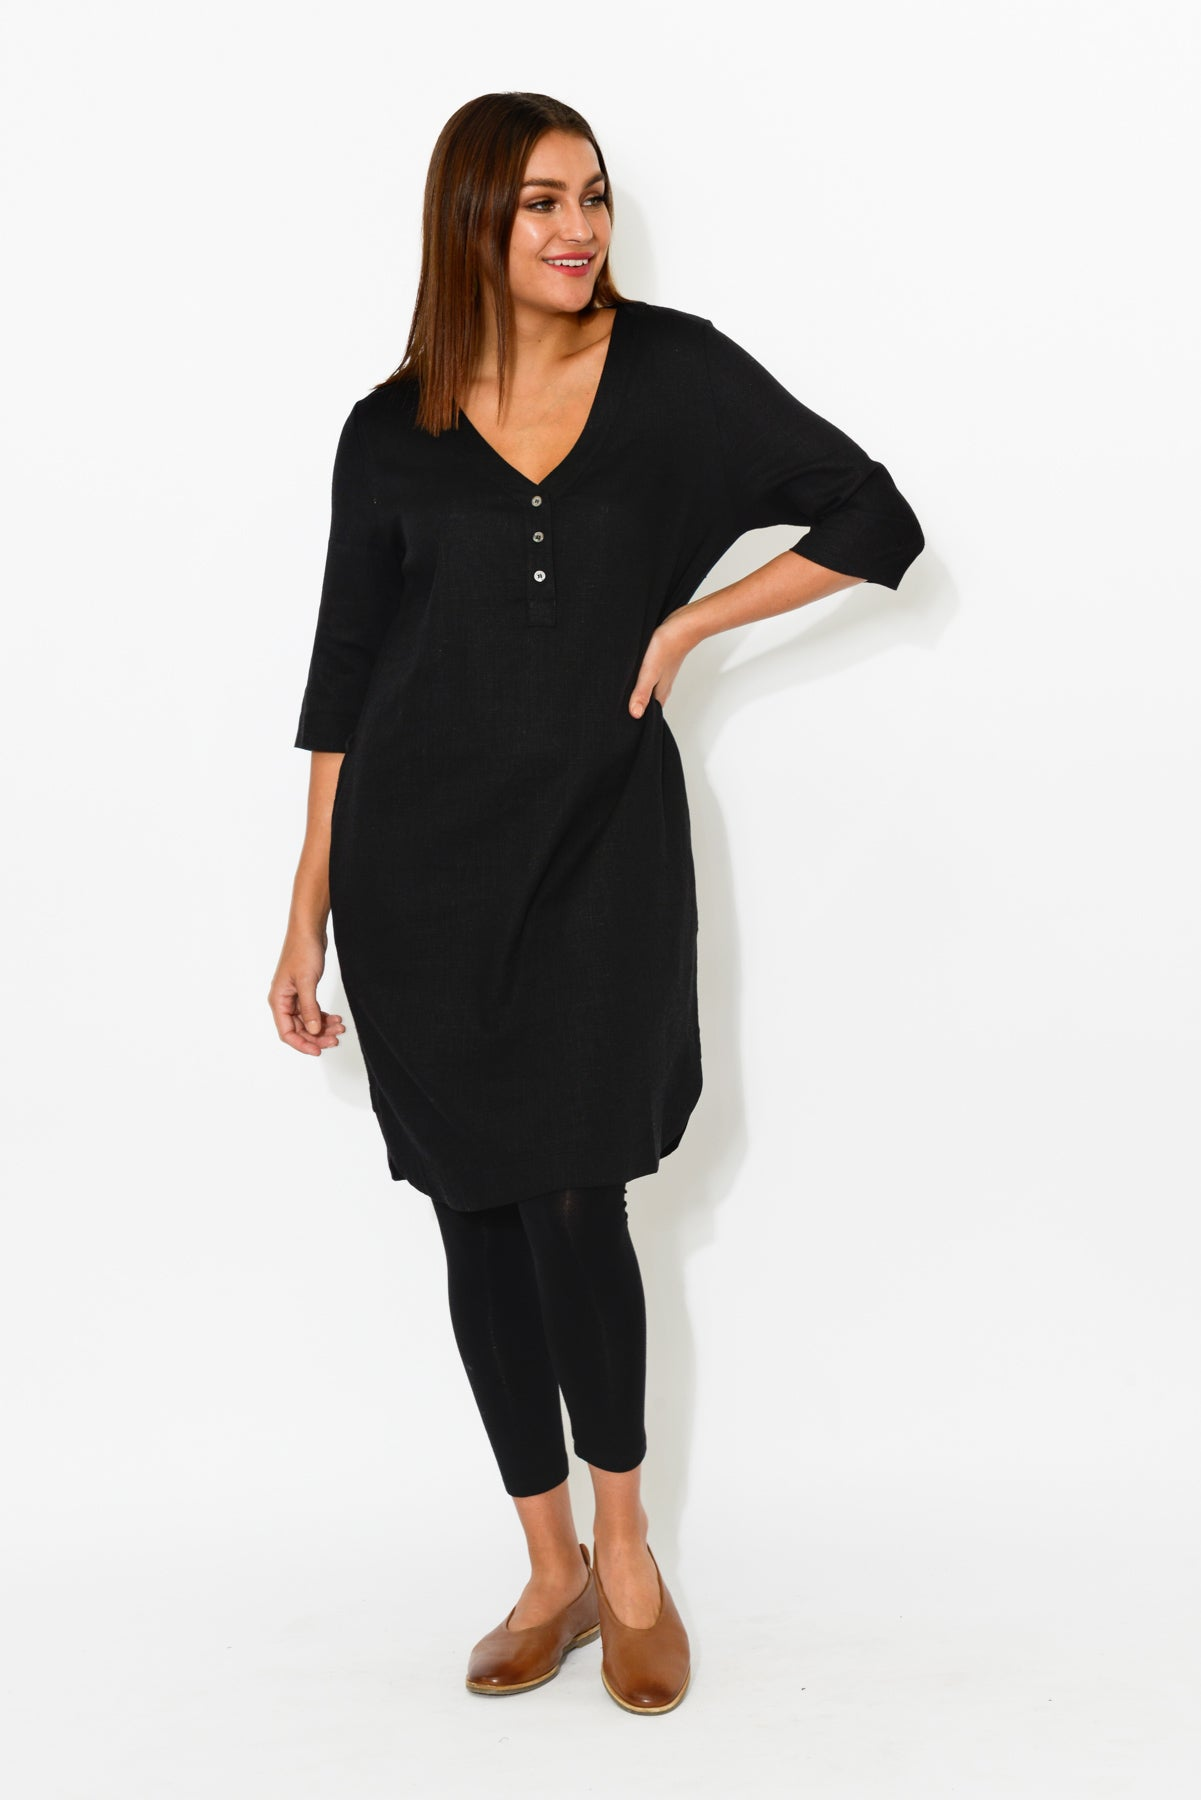 Black Linen Cotton Tunic Dress - Blue Bungalow